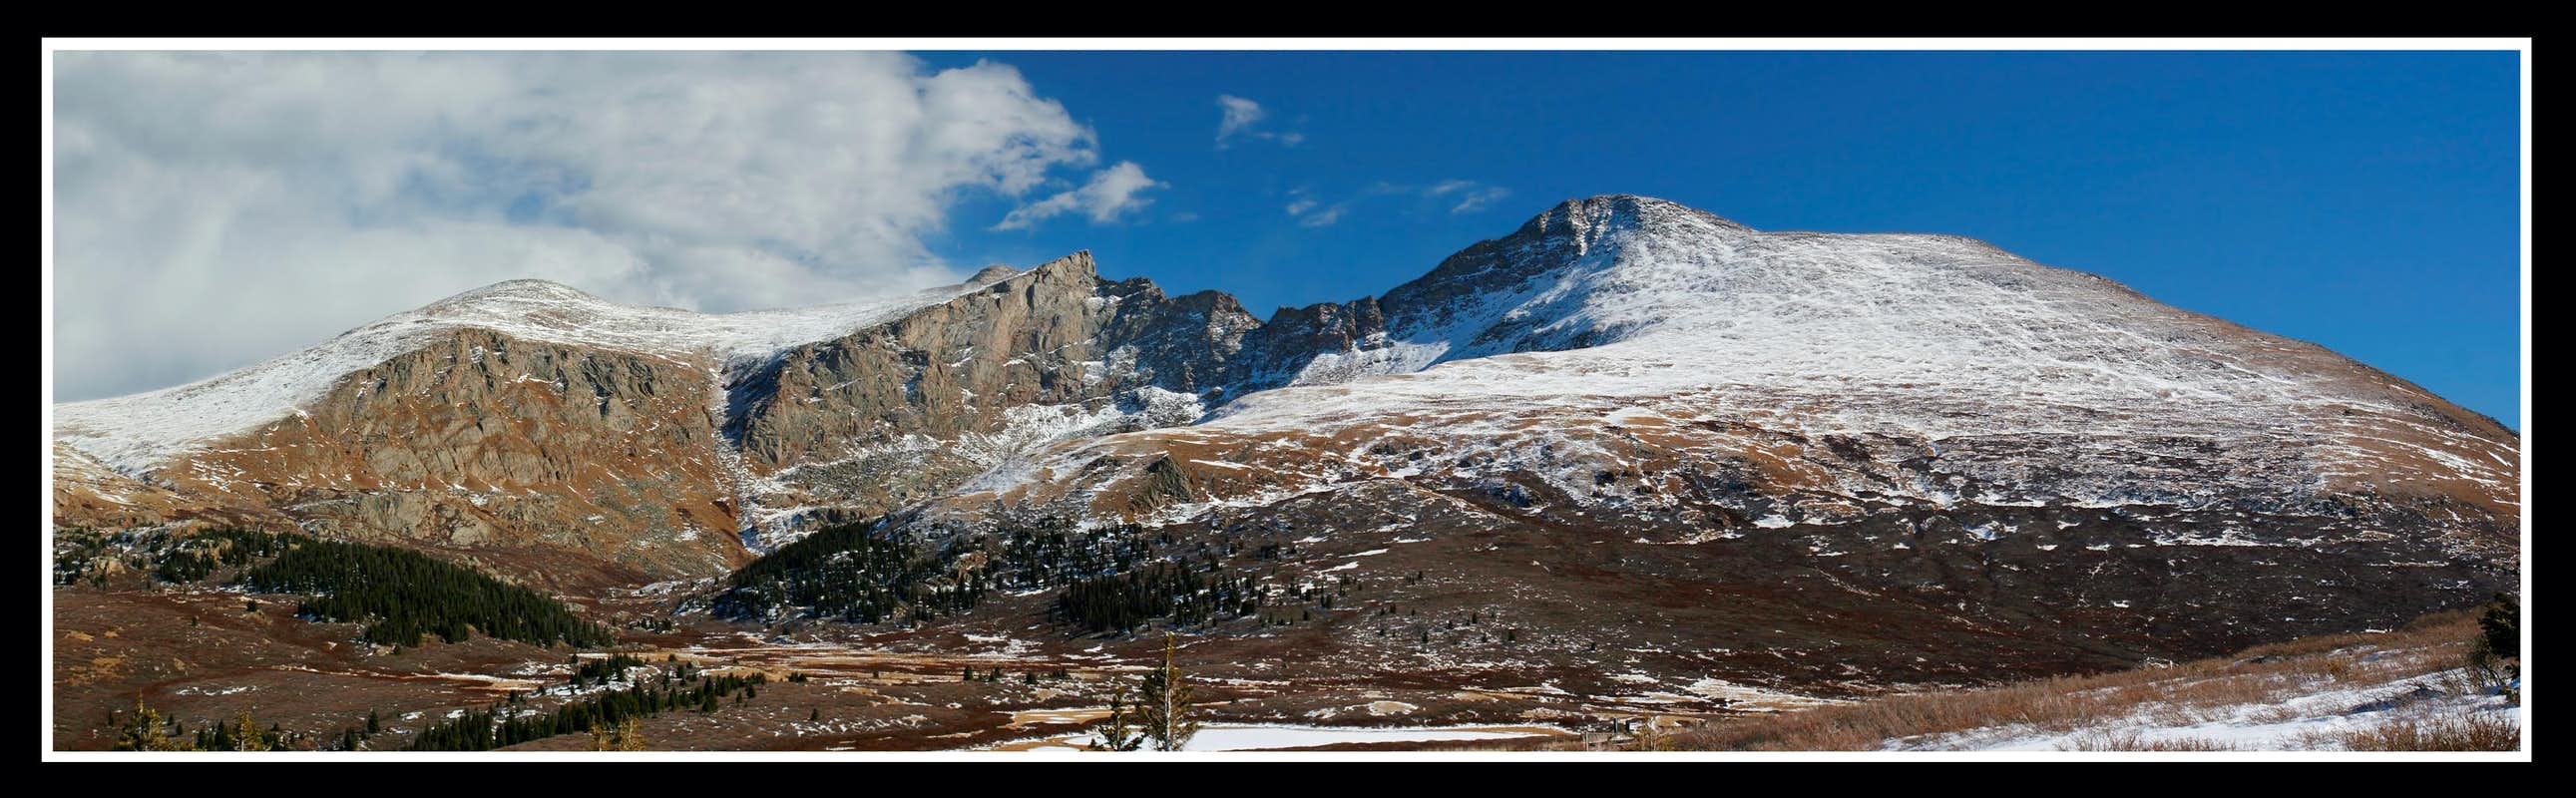 Mt. Bierstadt and the Sawtooth